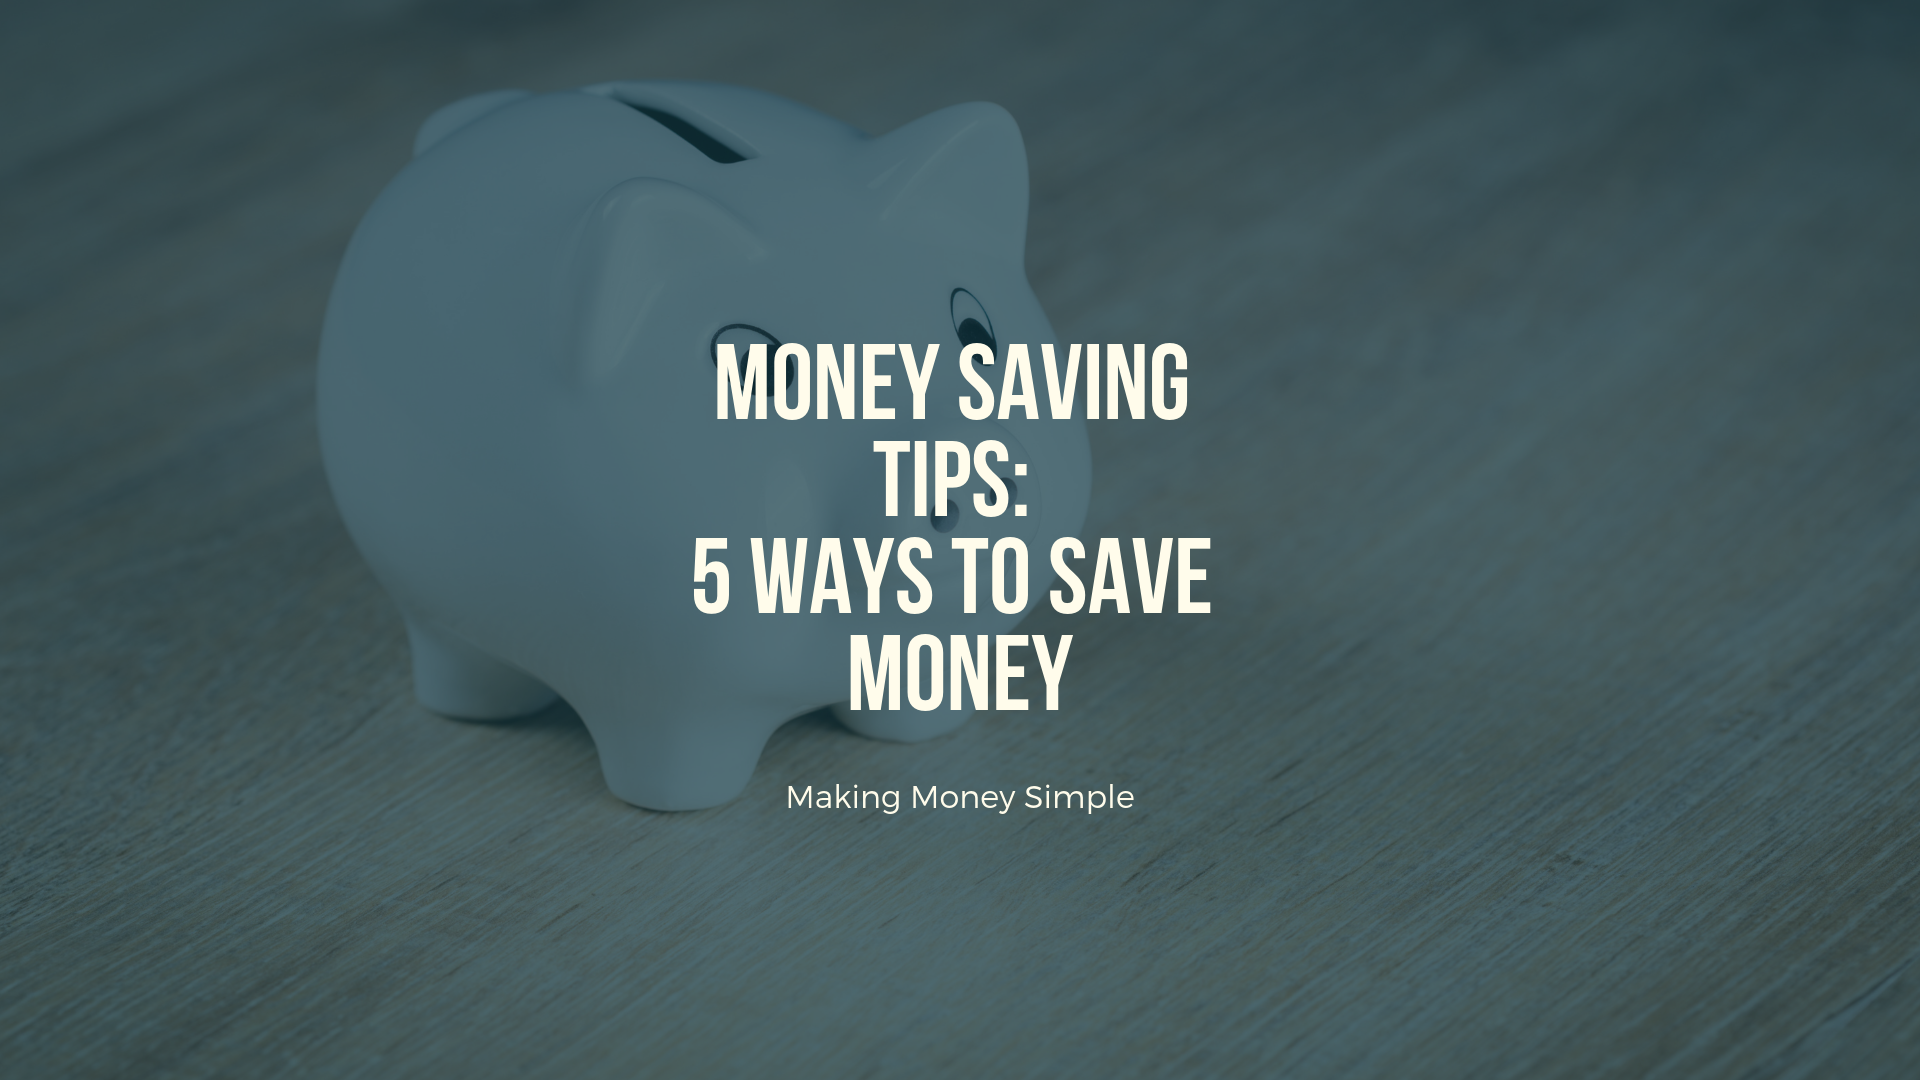 Money Saving Tips: 5 Ways to Save Money